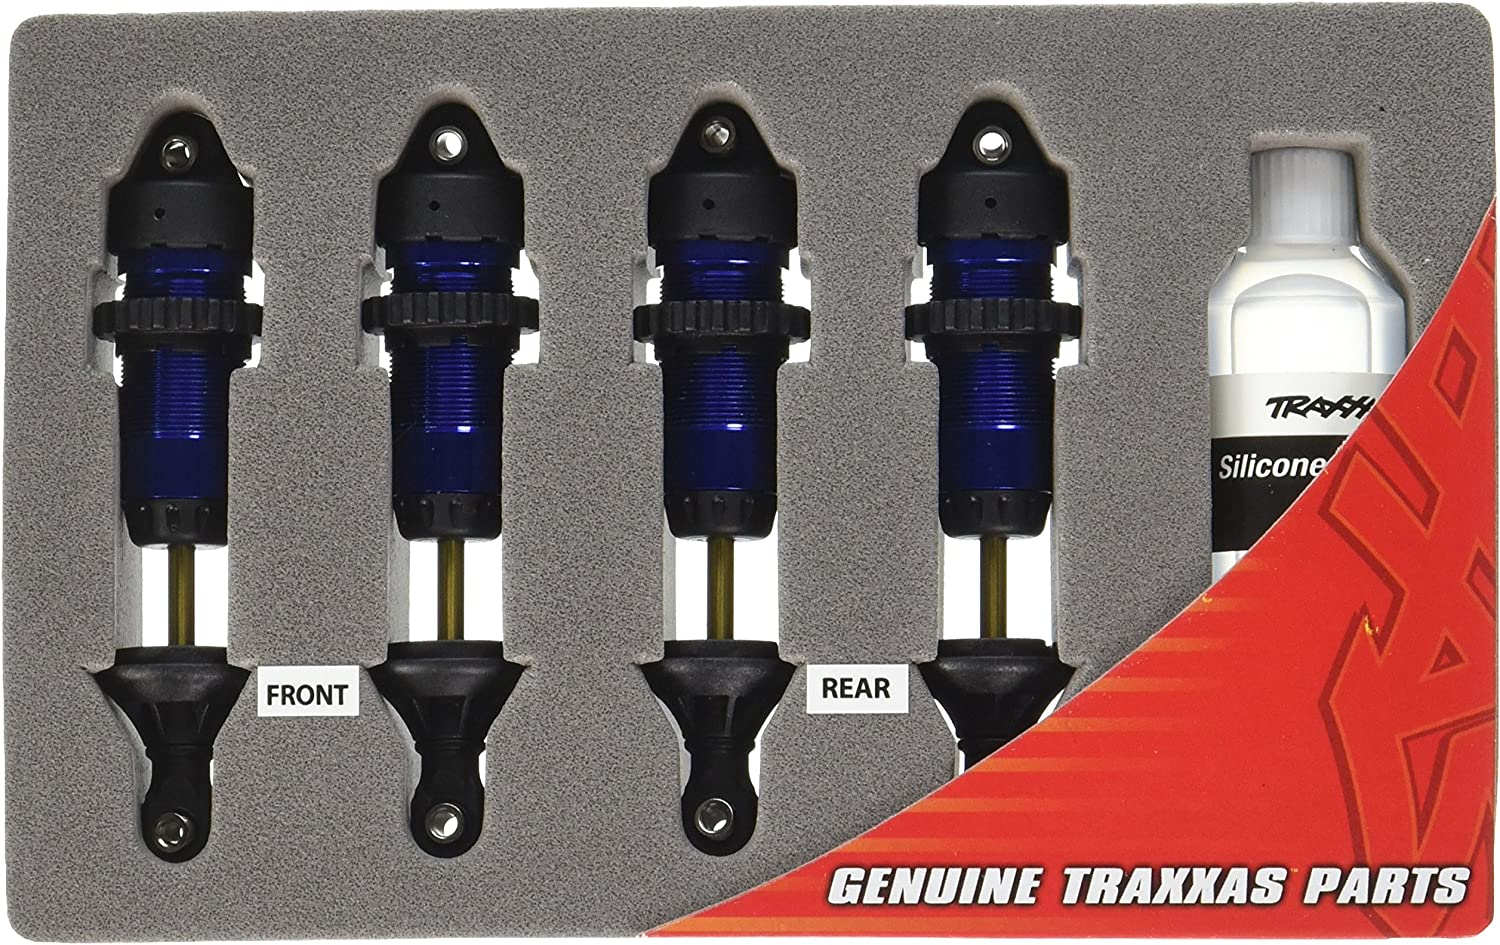 Traxxas 5460A Aluminum GTR Shocks, blueeAnodized, 4Piece